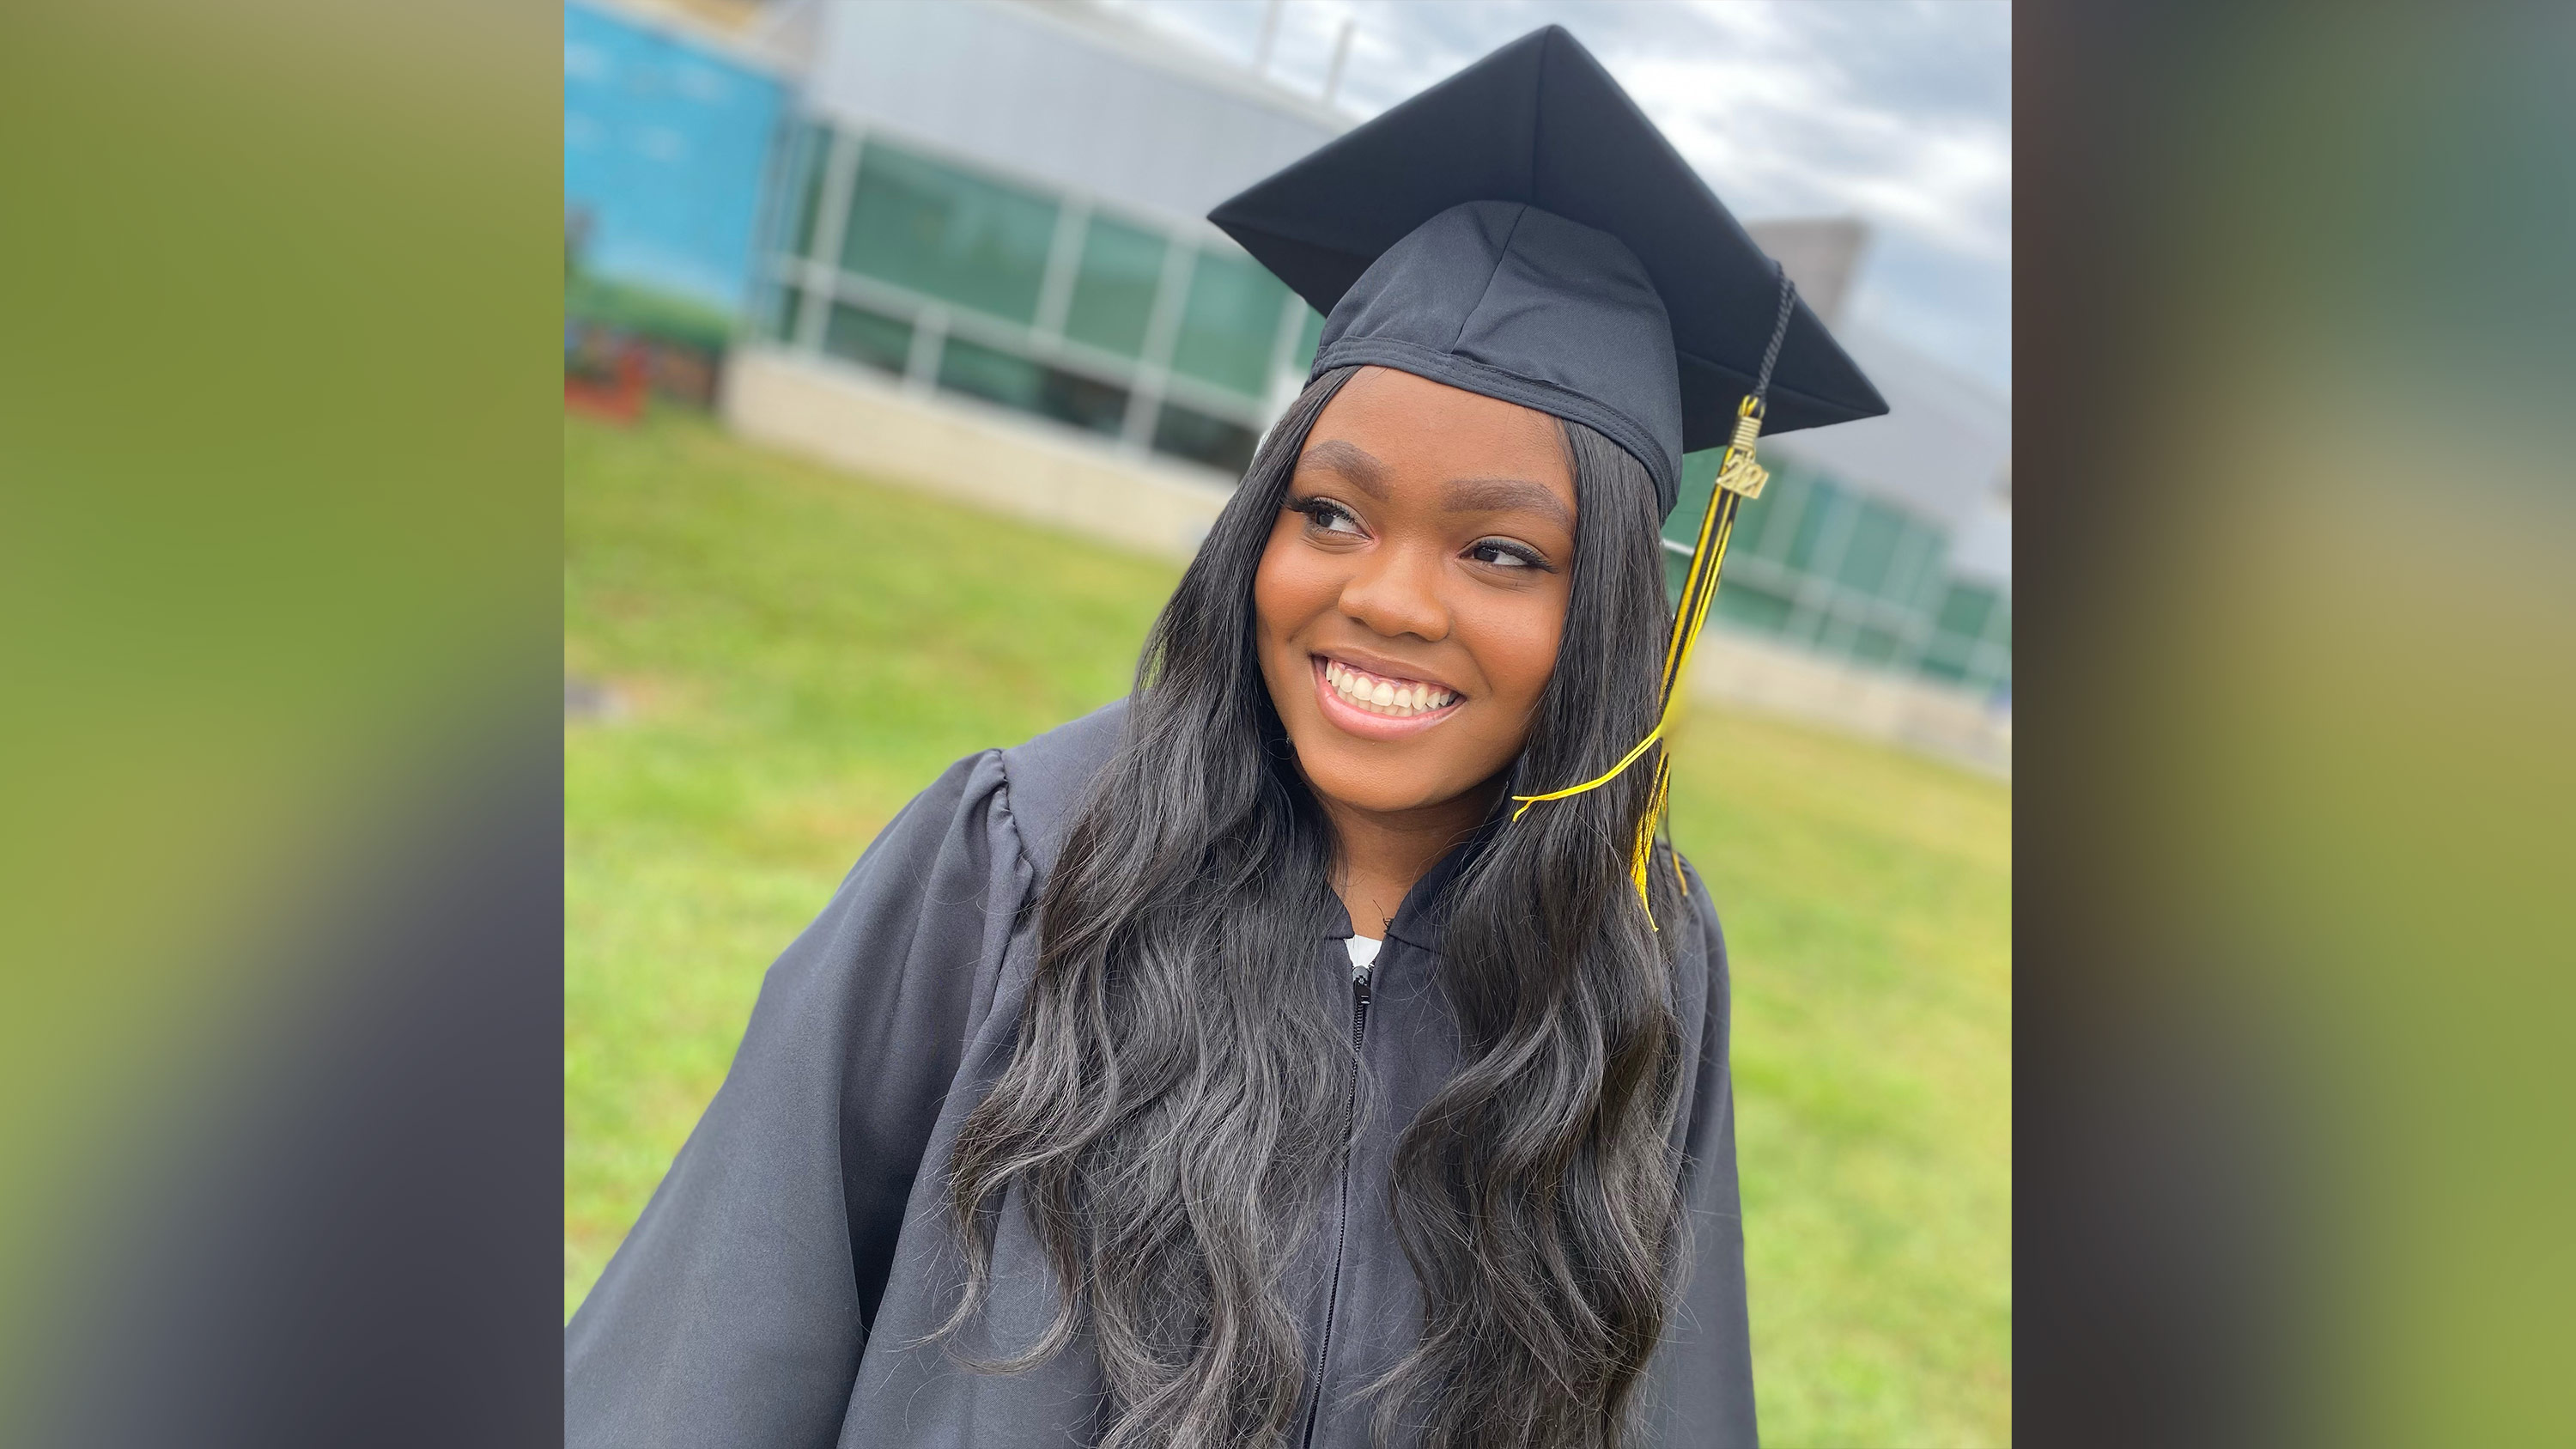 This teen was offered over $1 million in scholarships when she applied to colleges